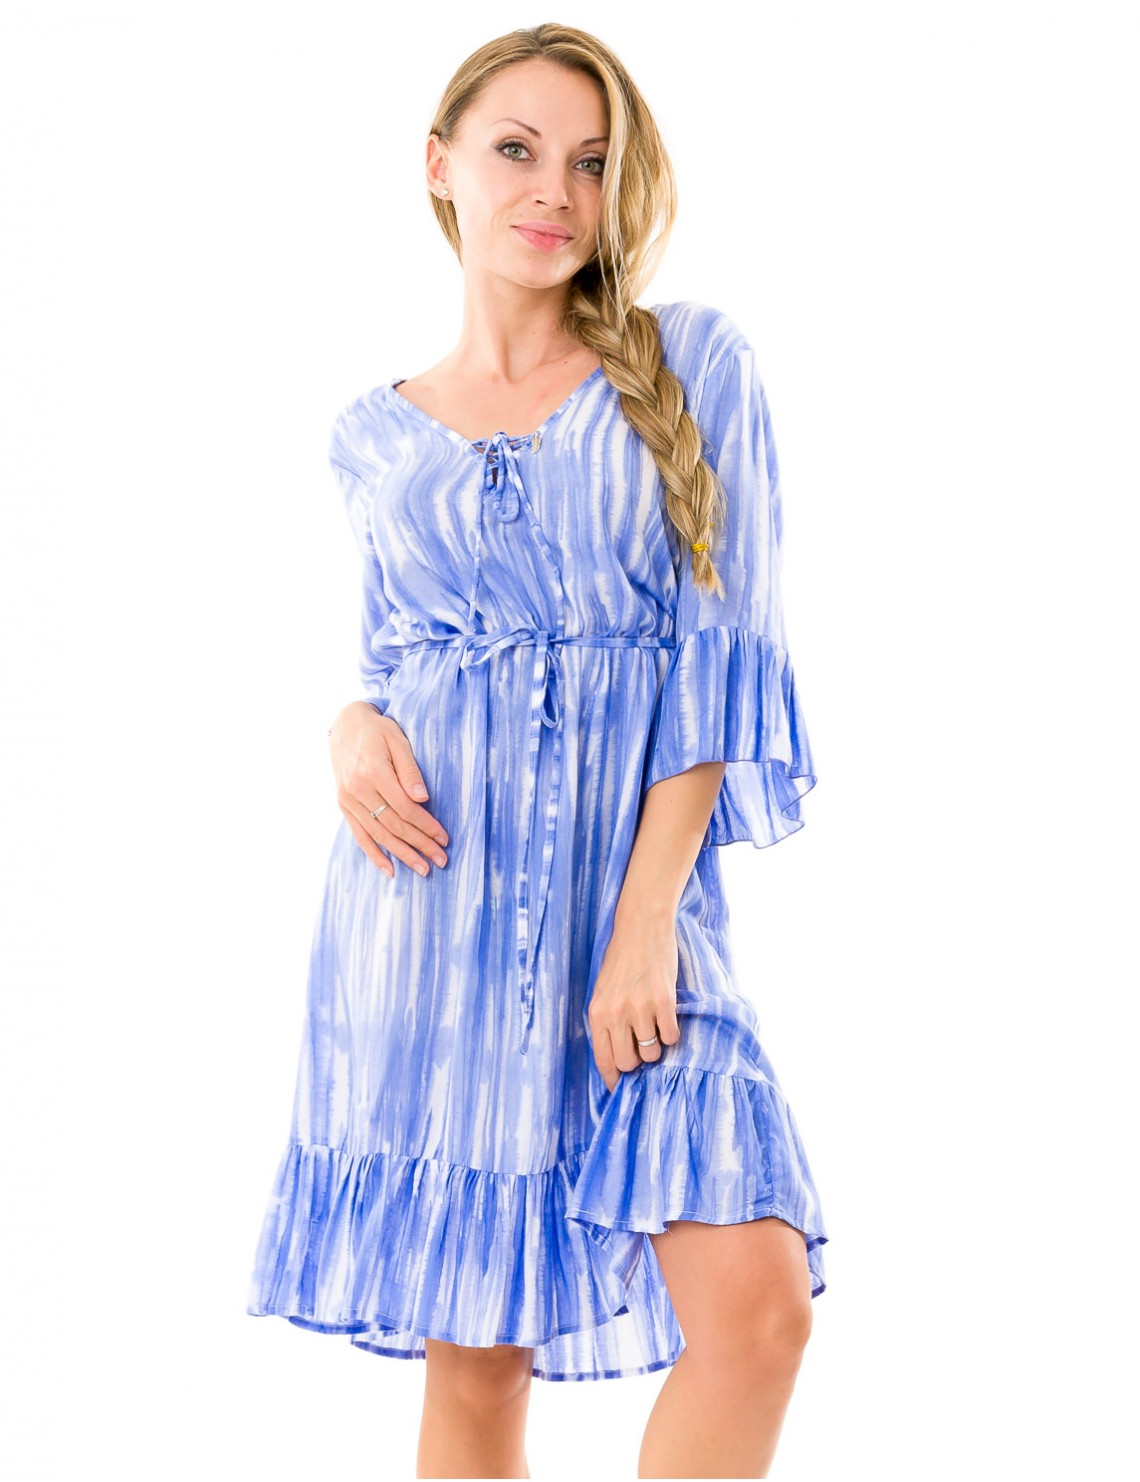 Lily Jane Dress - Picasso Persian